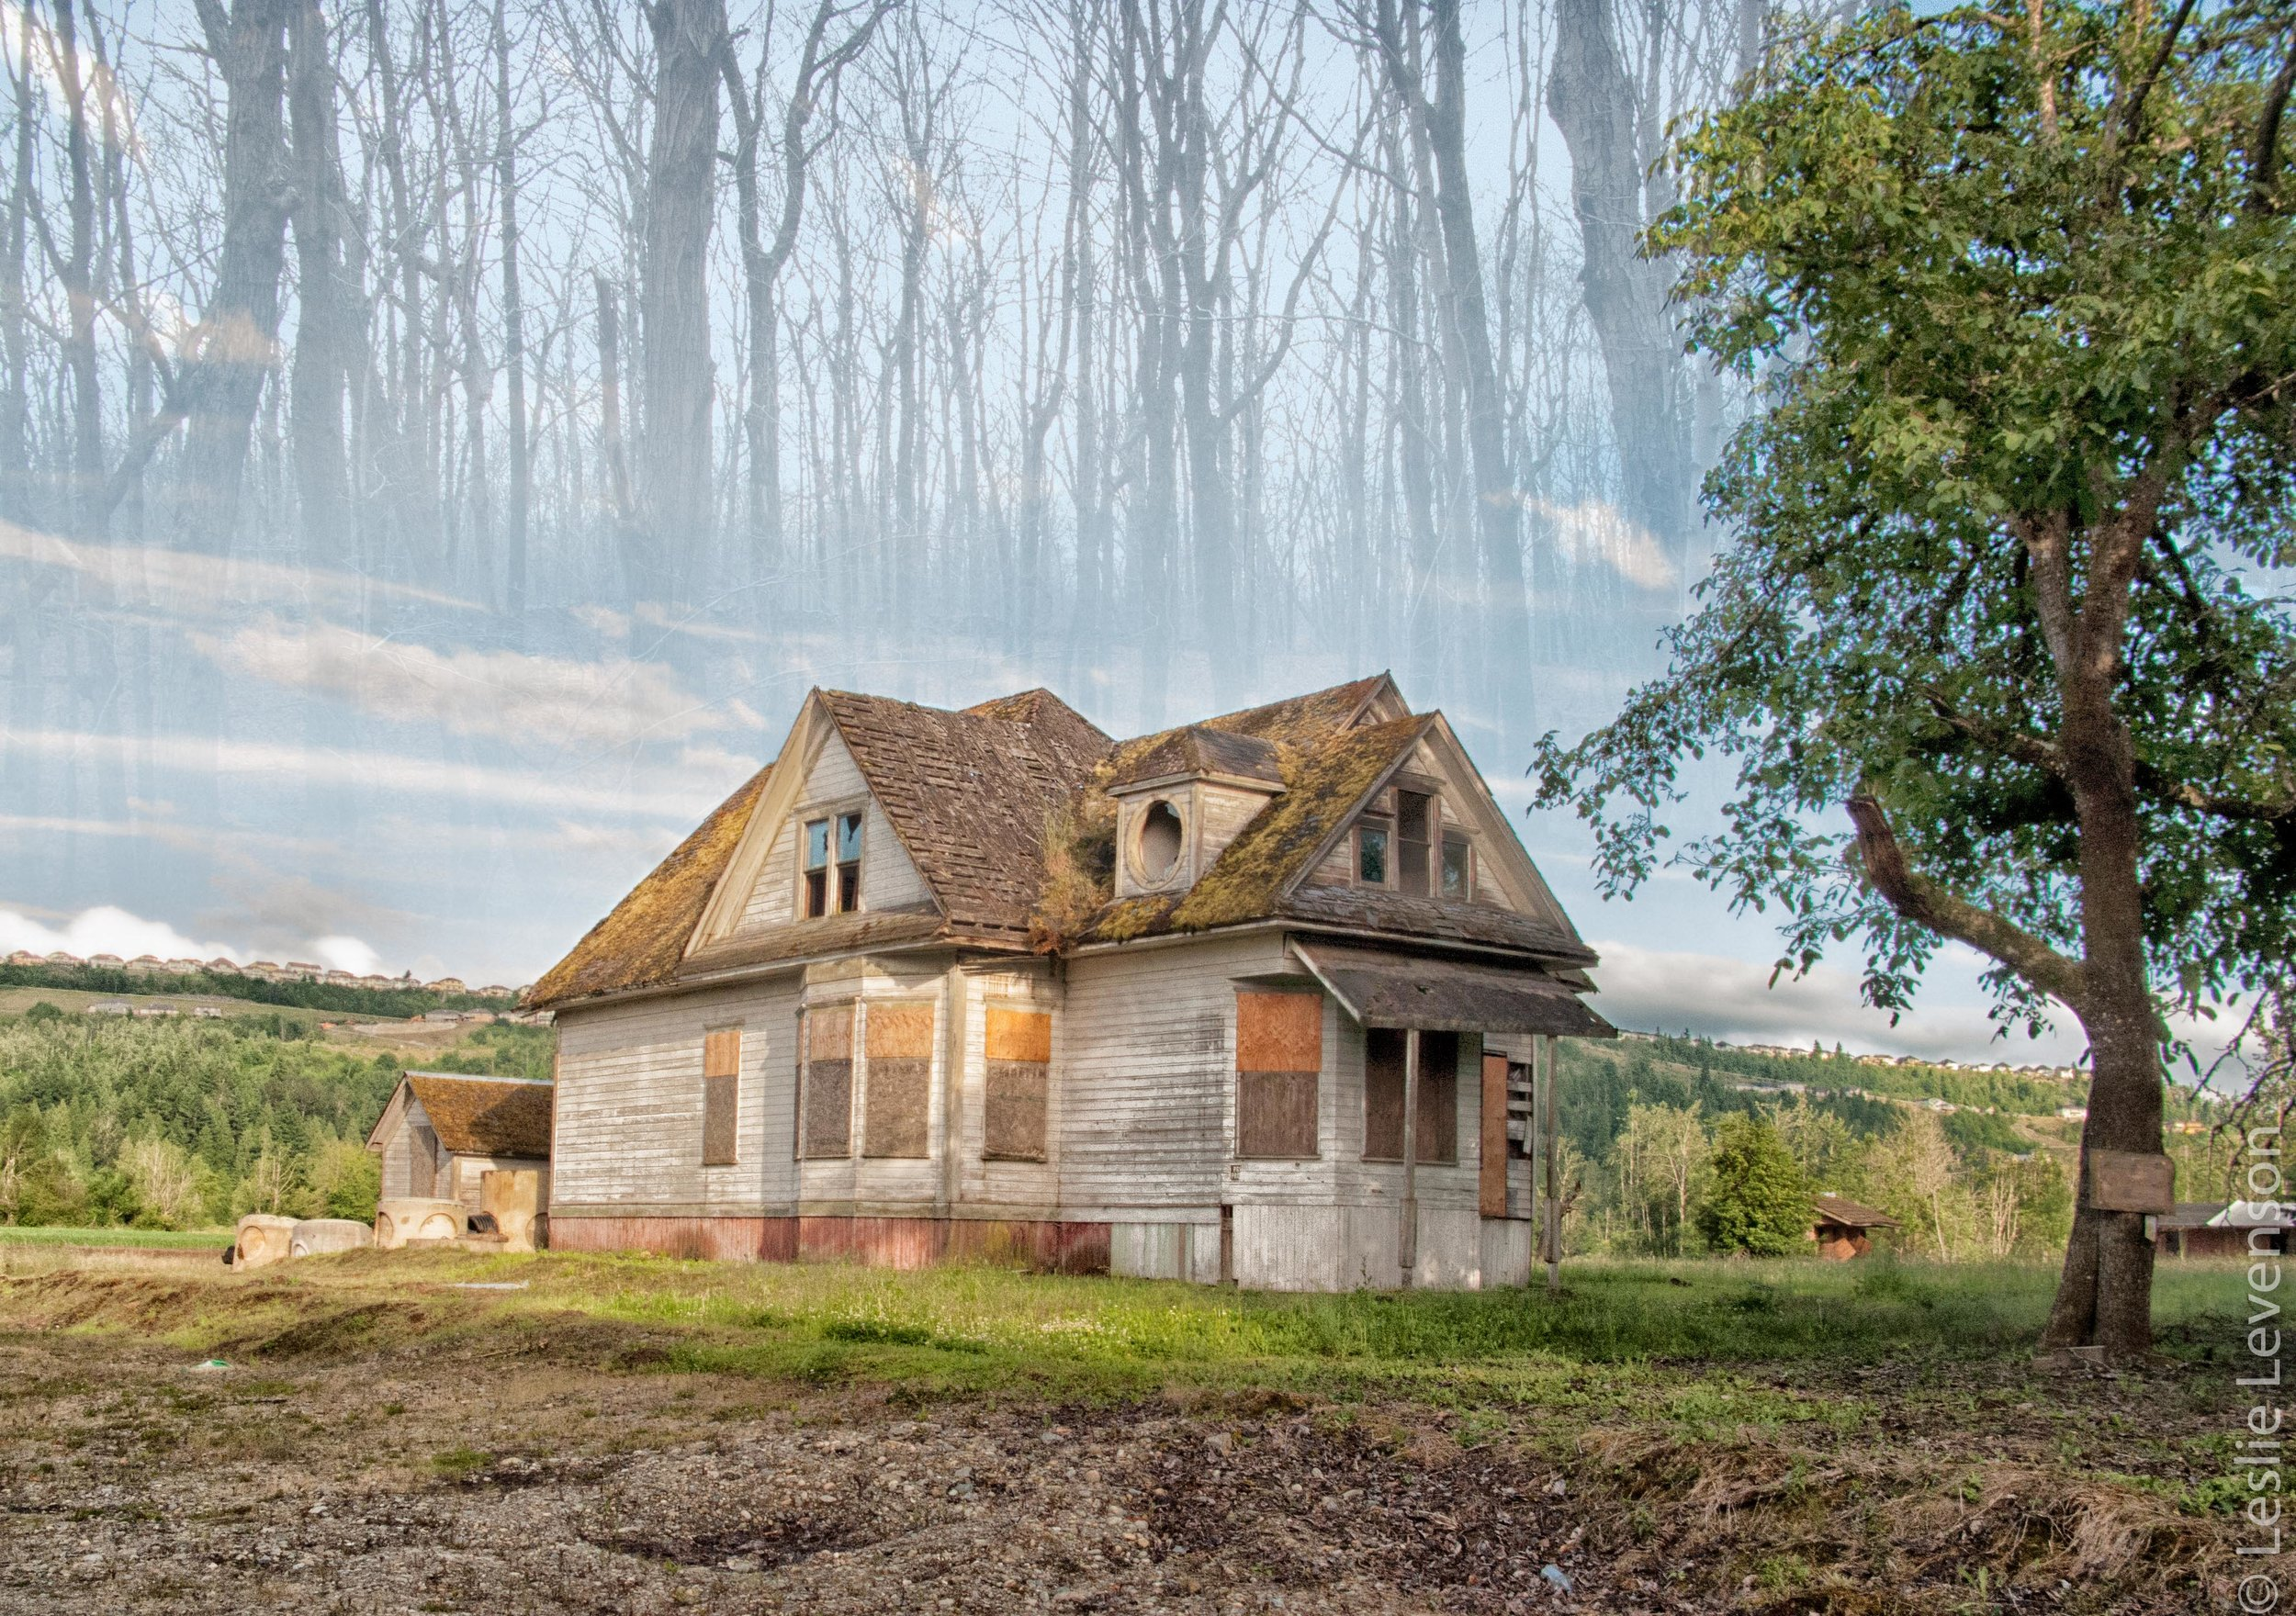 Ghost house with trees.jpg